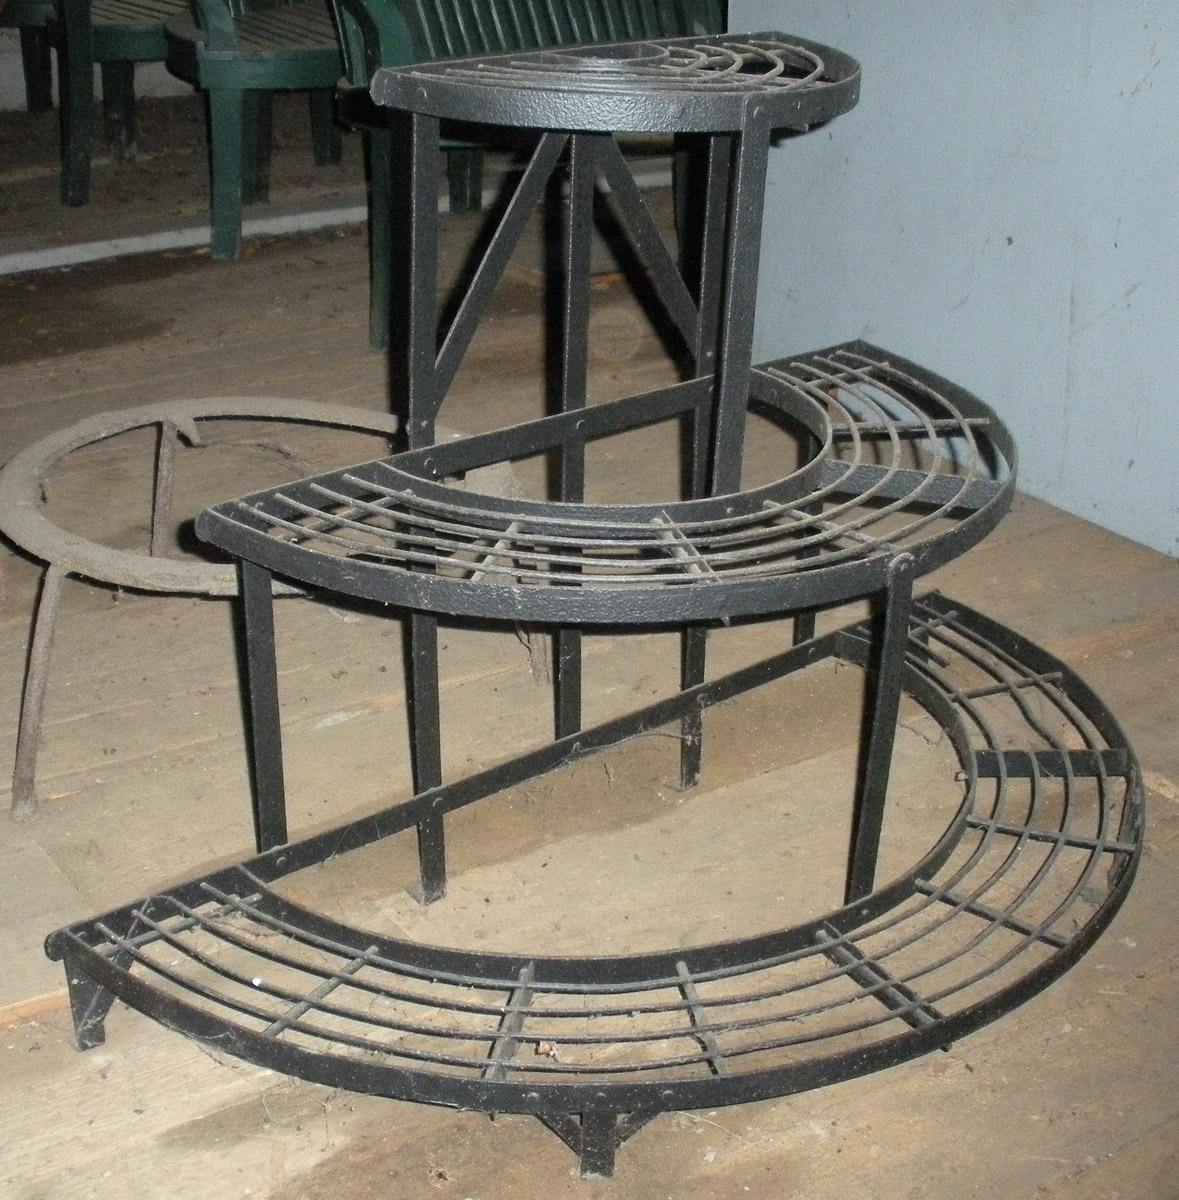 1965.3035.002 plant stand